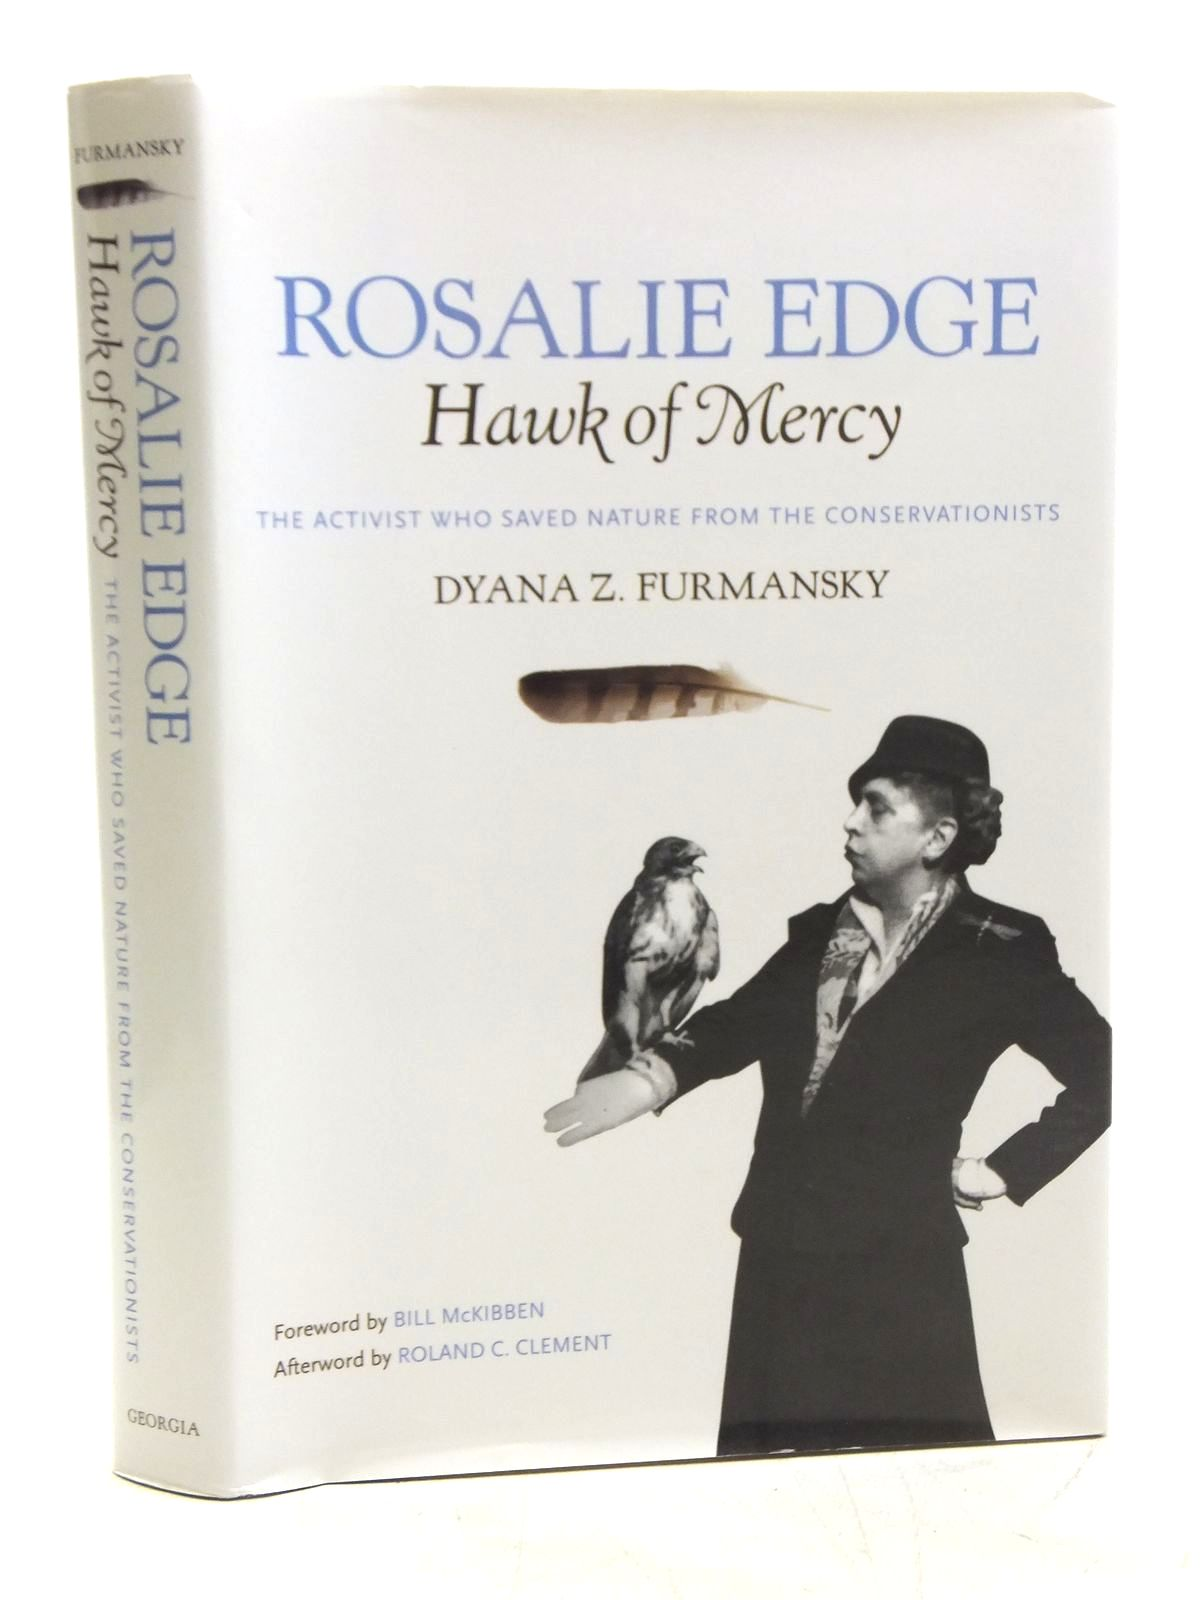 Photo of ROSALIE EDGE, HAWK OF MERCY written by Furmansky, Dyana Z. published by The University of Georgia Press (STOCK CODE: 1607688)  for sale by Stella & Rose's Books